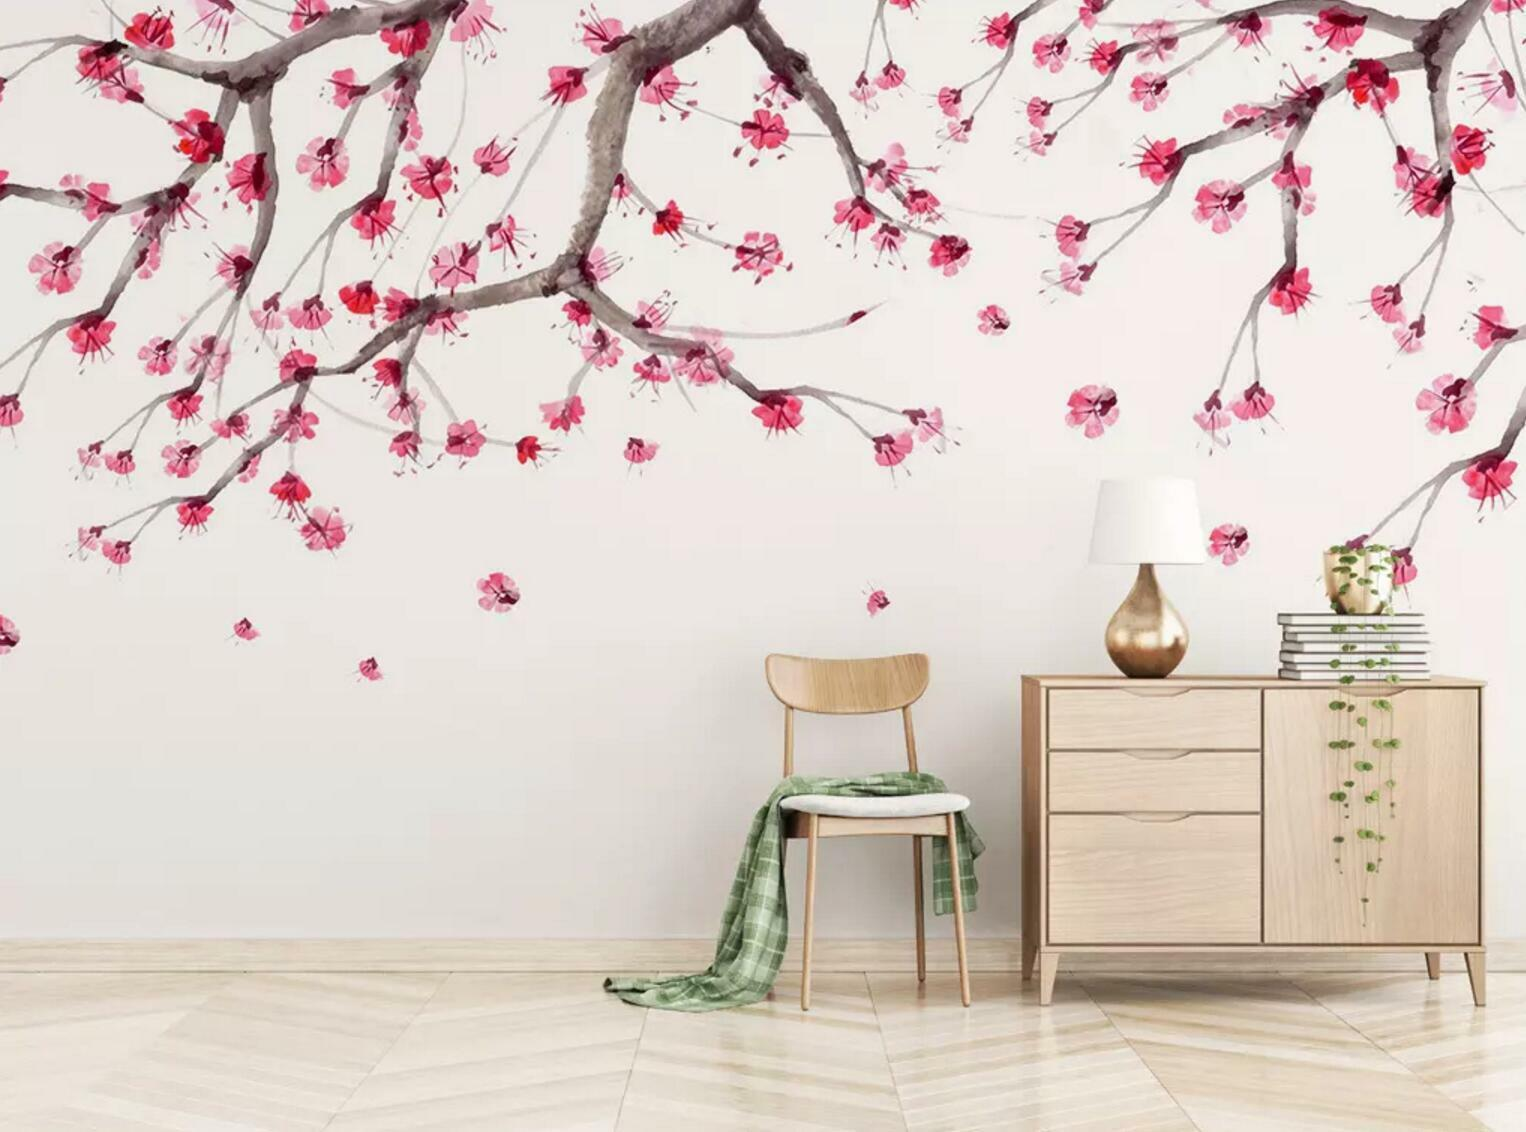 3D Cherry Flower Tree 4 Wall Paper Exclusive MXY Wallpaper Mural Decal Indoor AJ